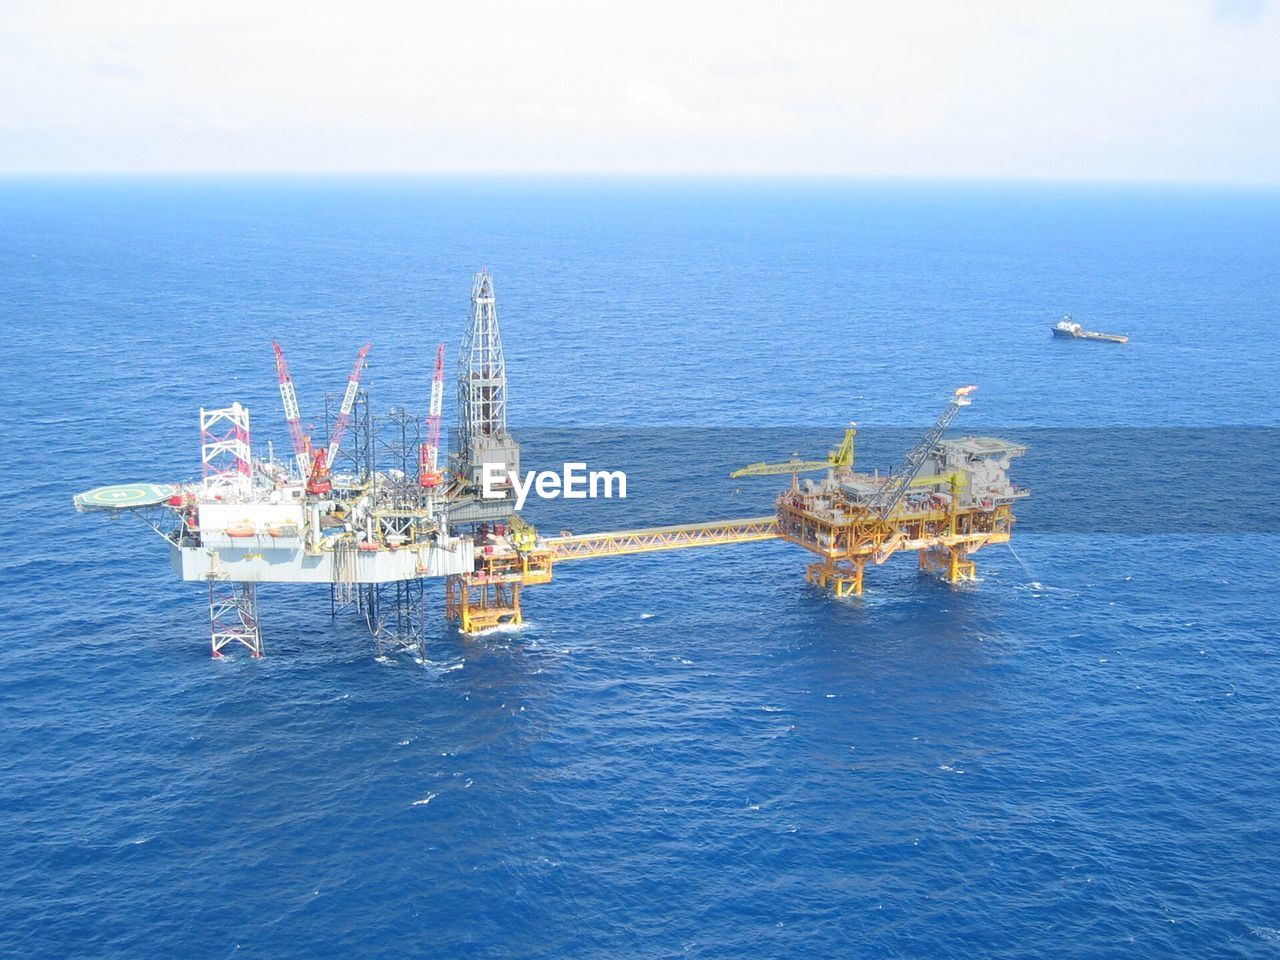 SCENIC VIEW OF OIL DRILL IN SEA AGAINST CLEAR SKY